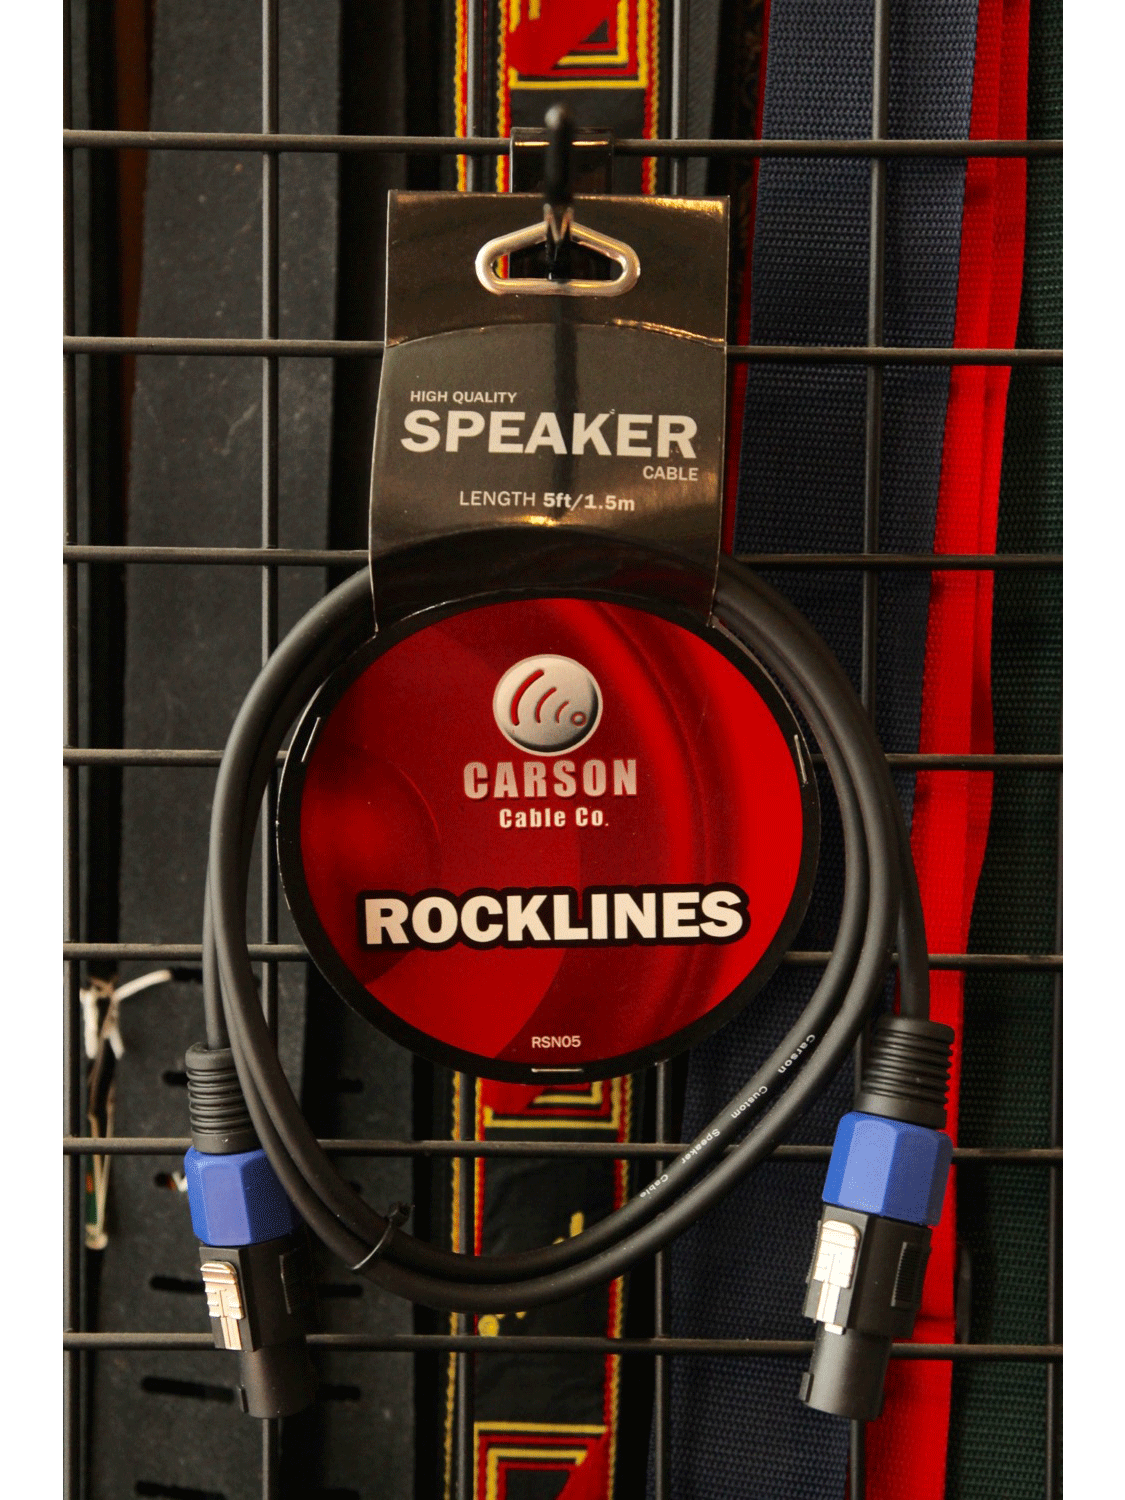 Carson Speakon Speaker Cable 5ft RSN05 - The Rock Inn